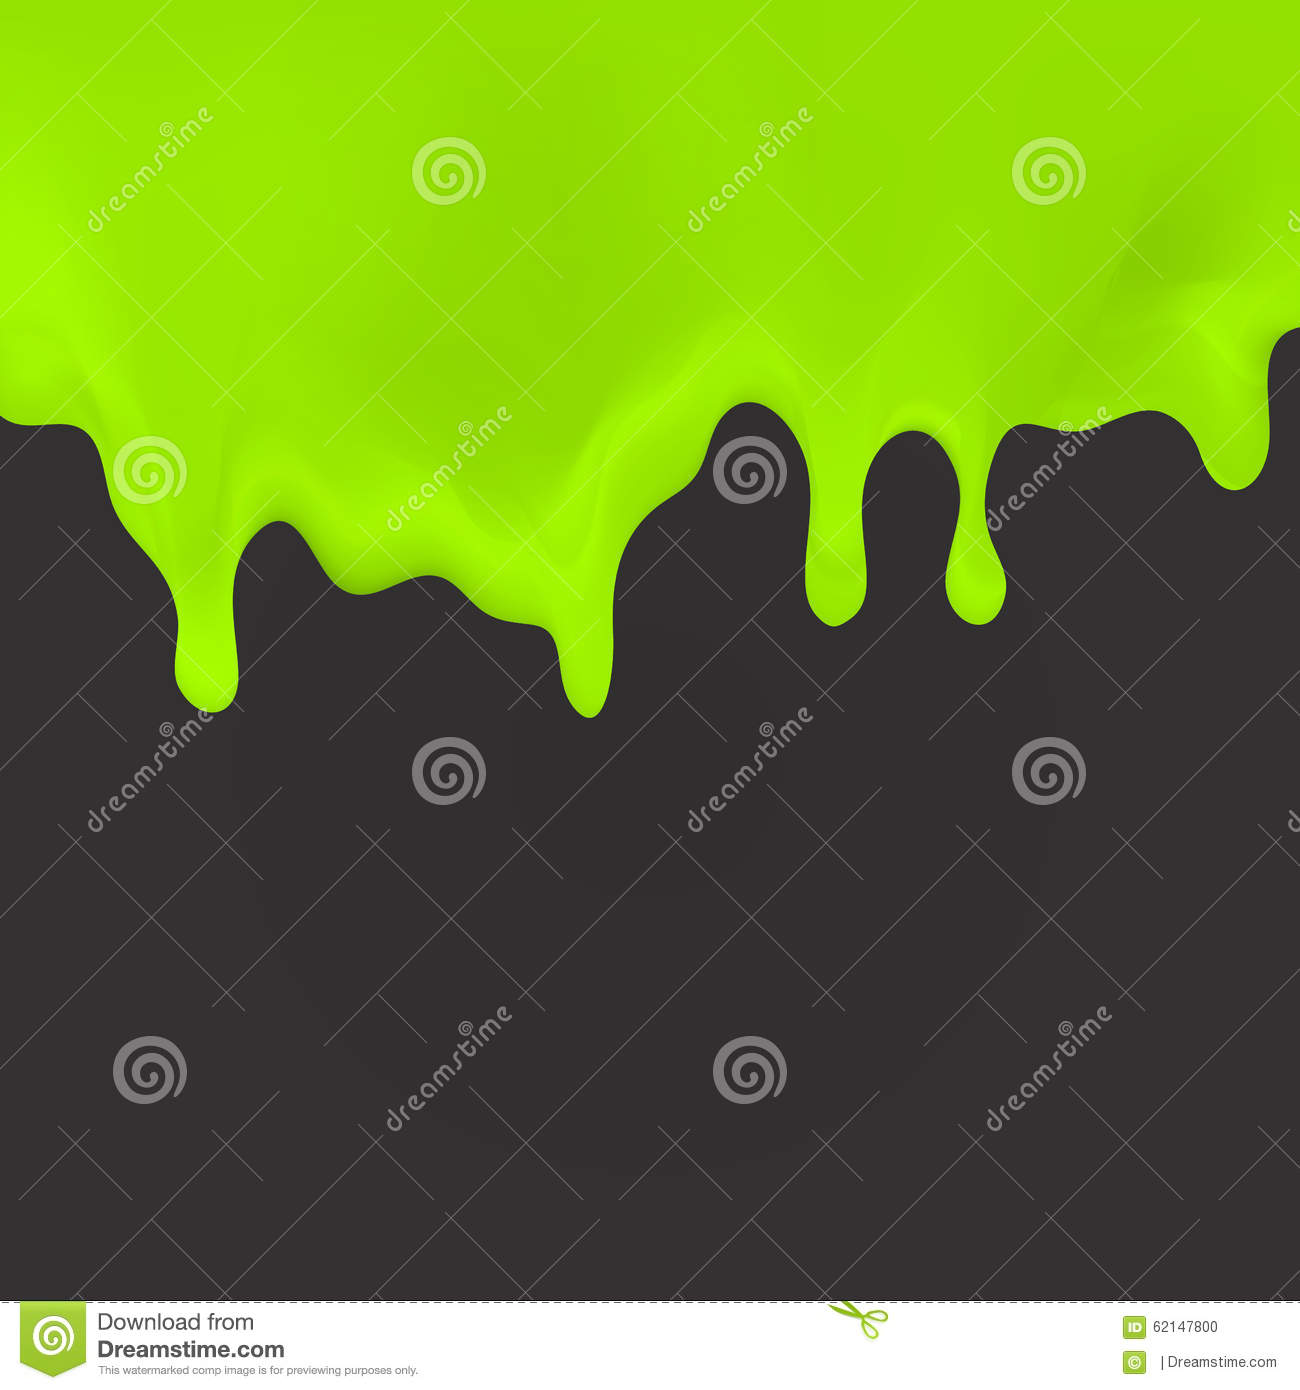 Oozing Slime Seamlessly Repeatable Stock Vector - Image ...